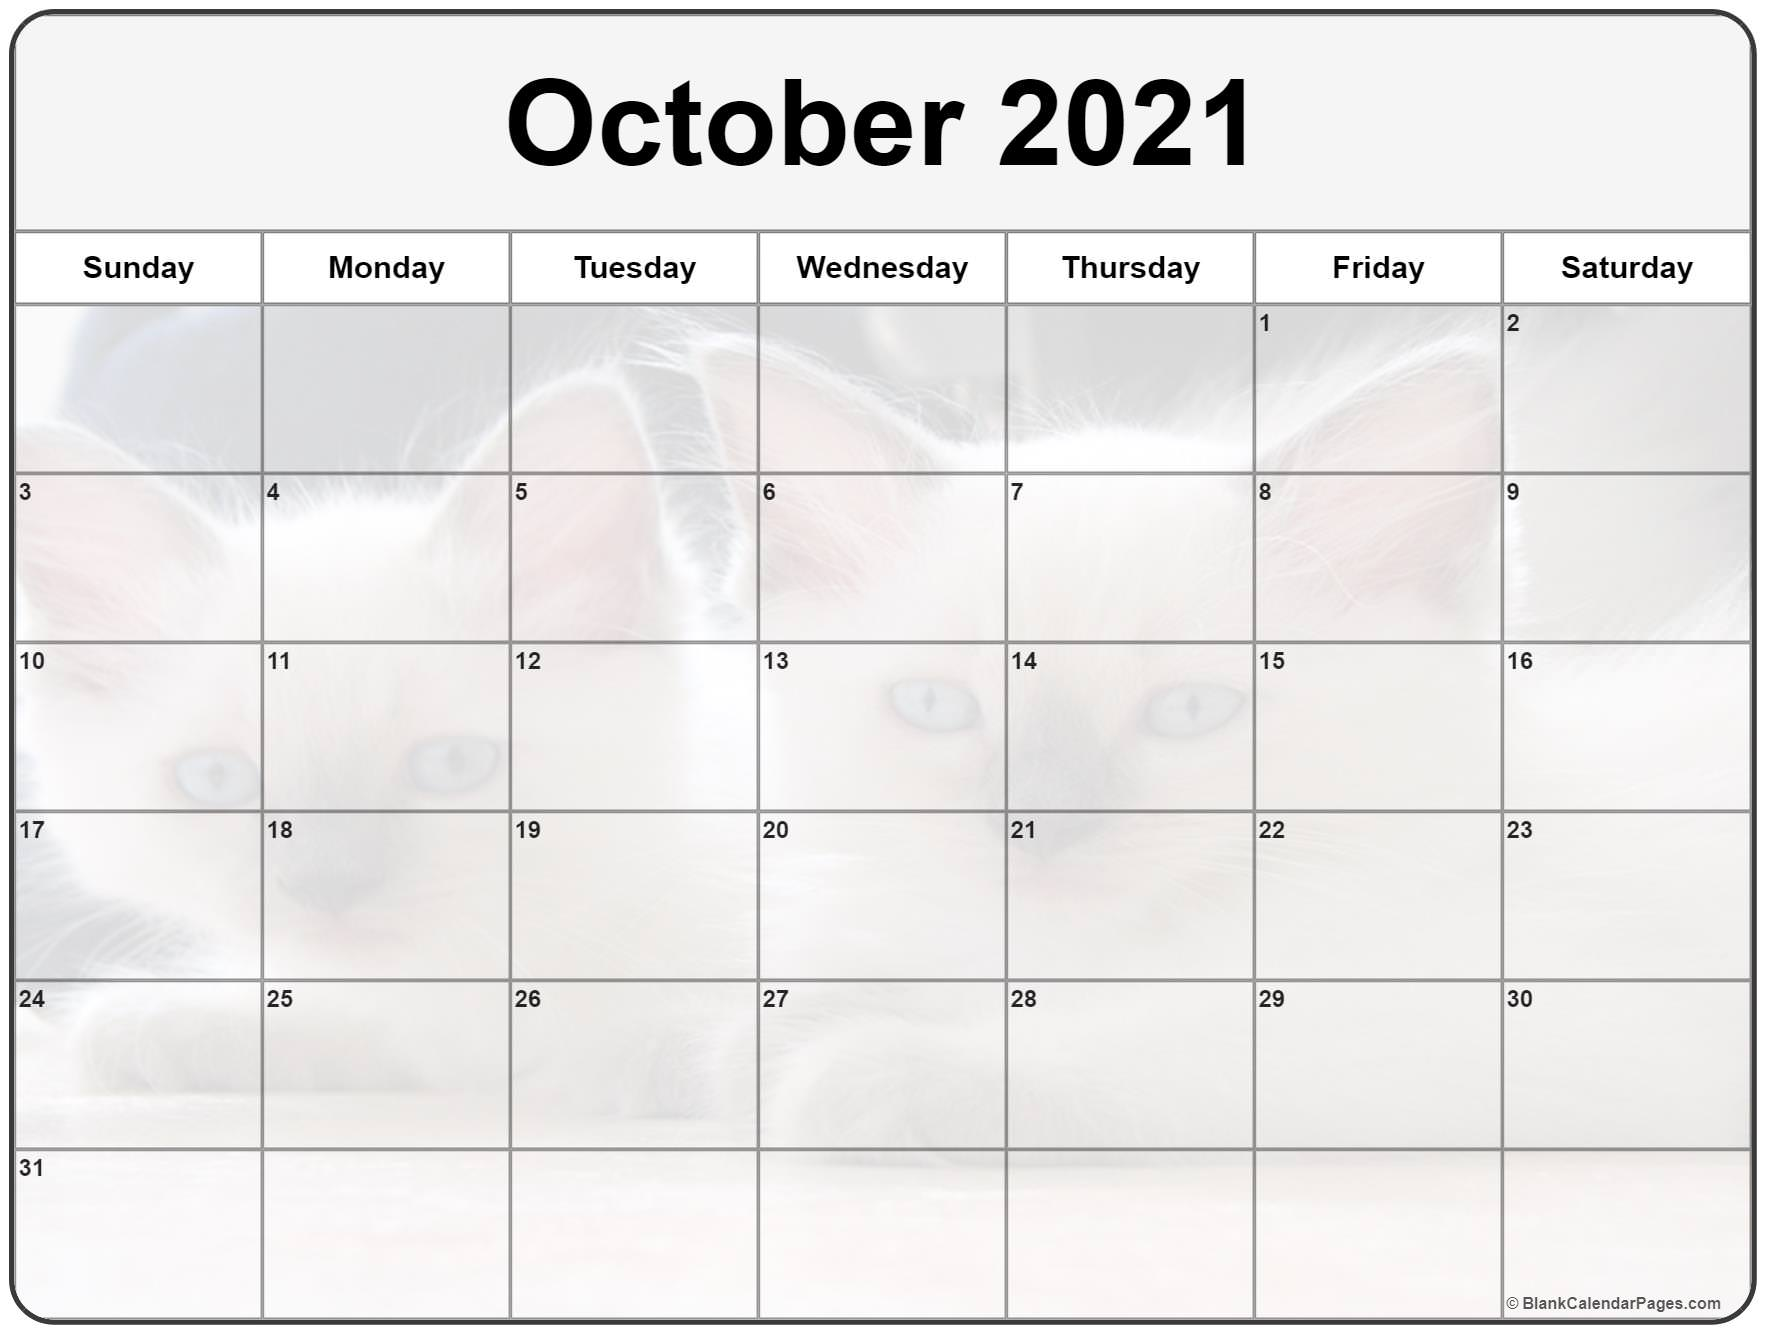 October 2021 printable calendar with cute cat filters